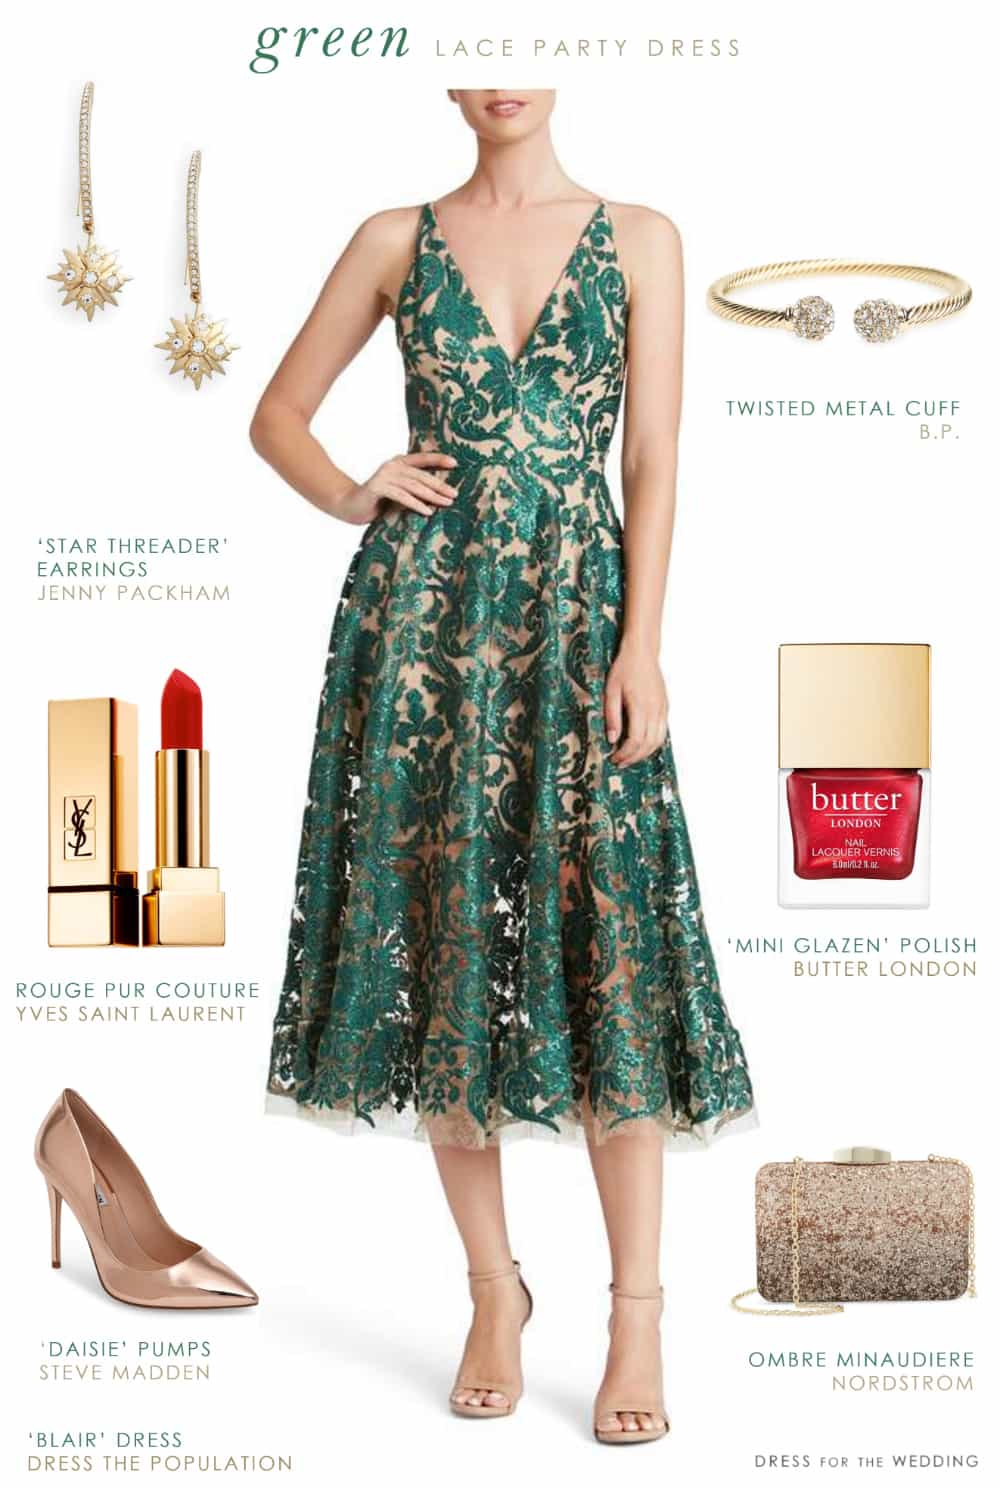 Semi formal wedding attire archives at dress for the wedding semi formal wedding attire green lace party dress junglespirit Image collections